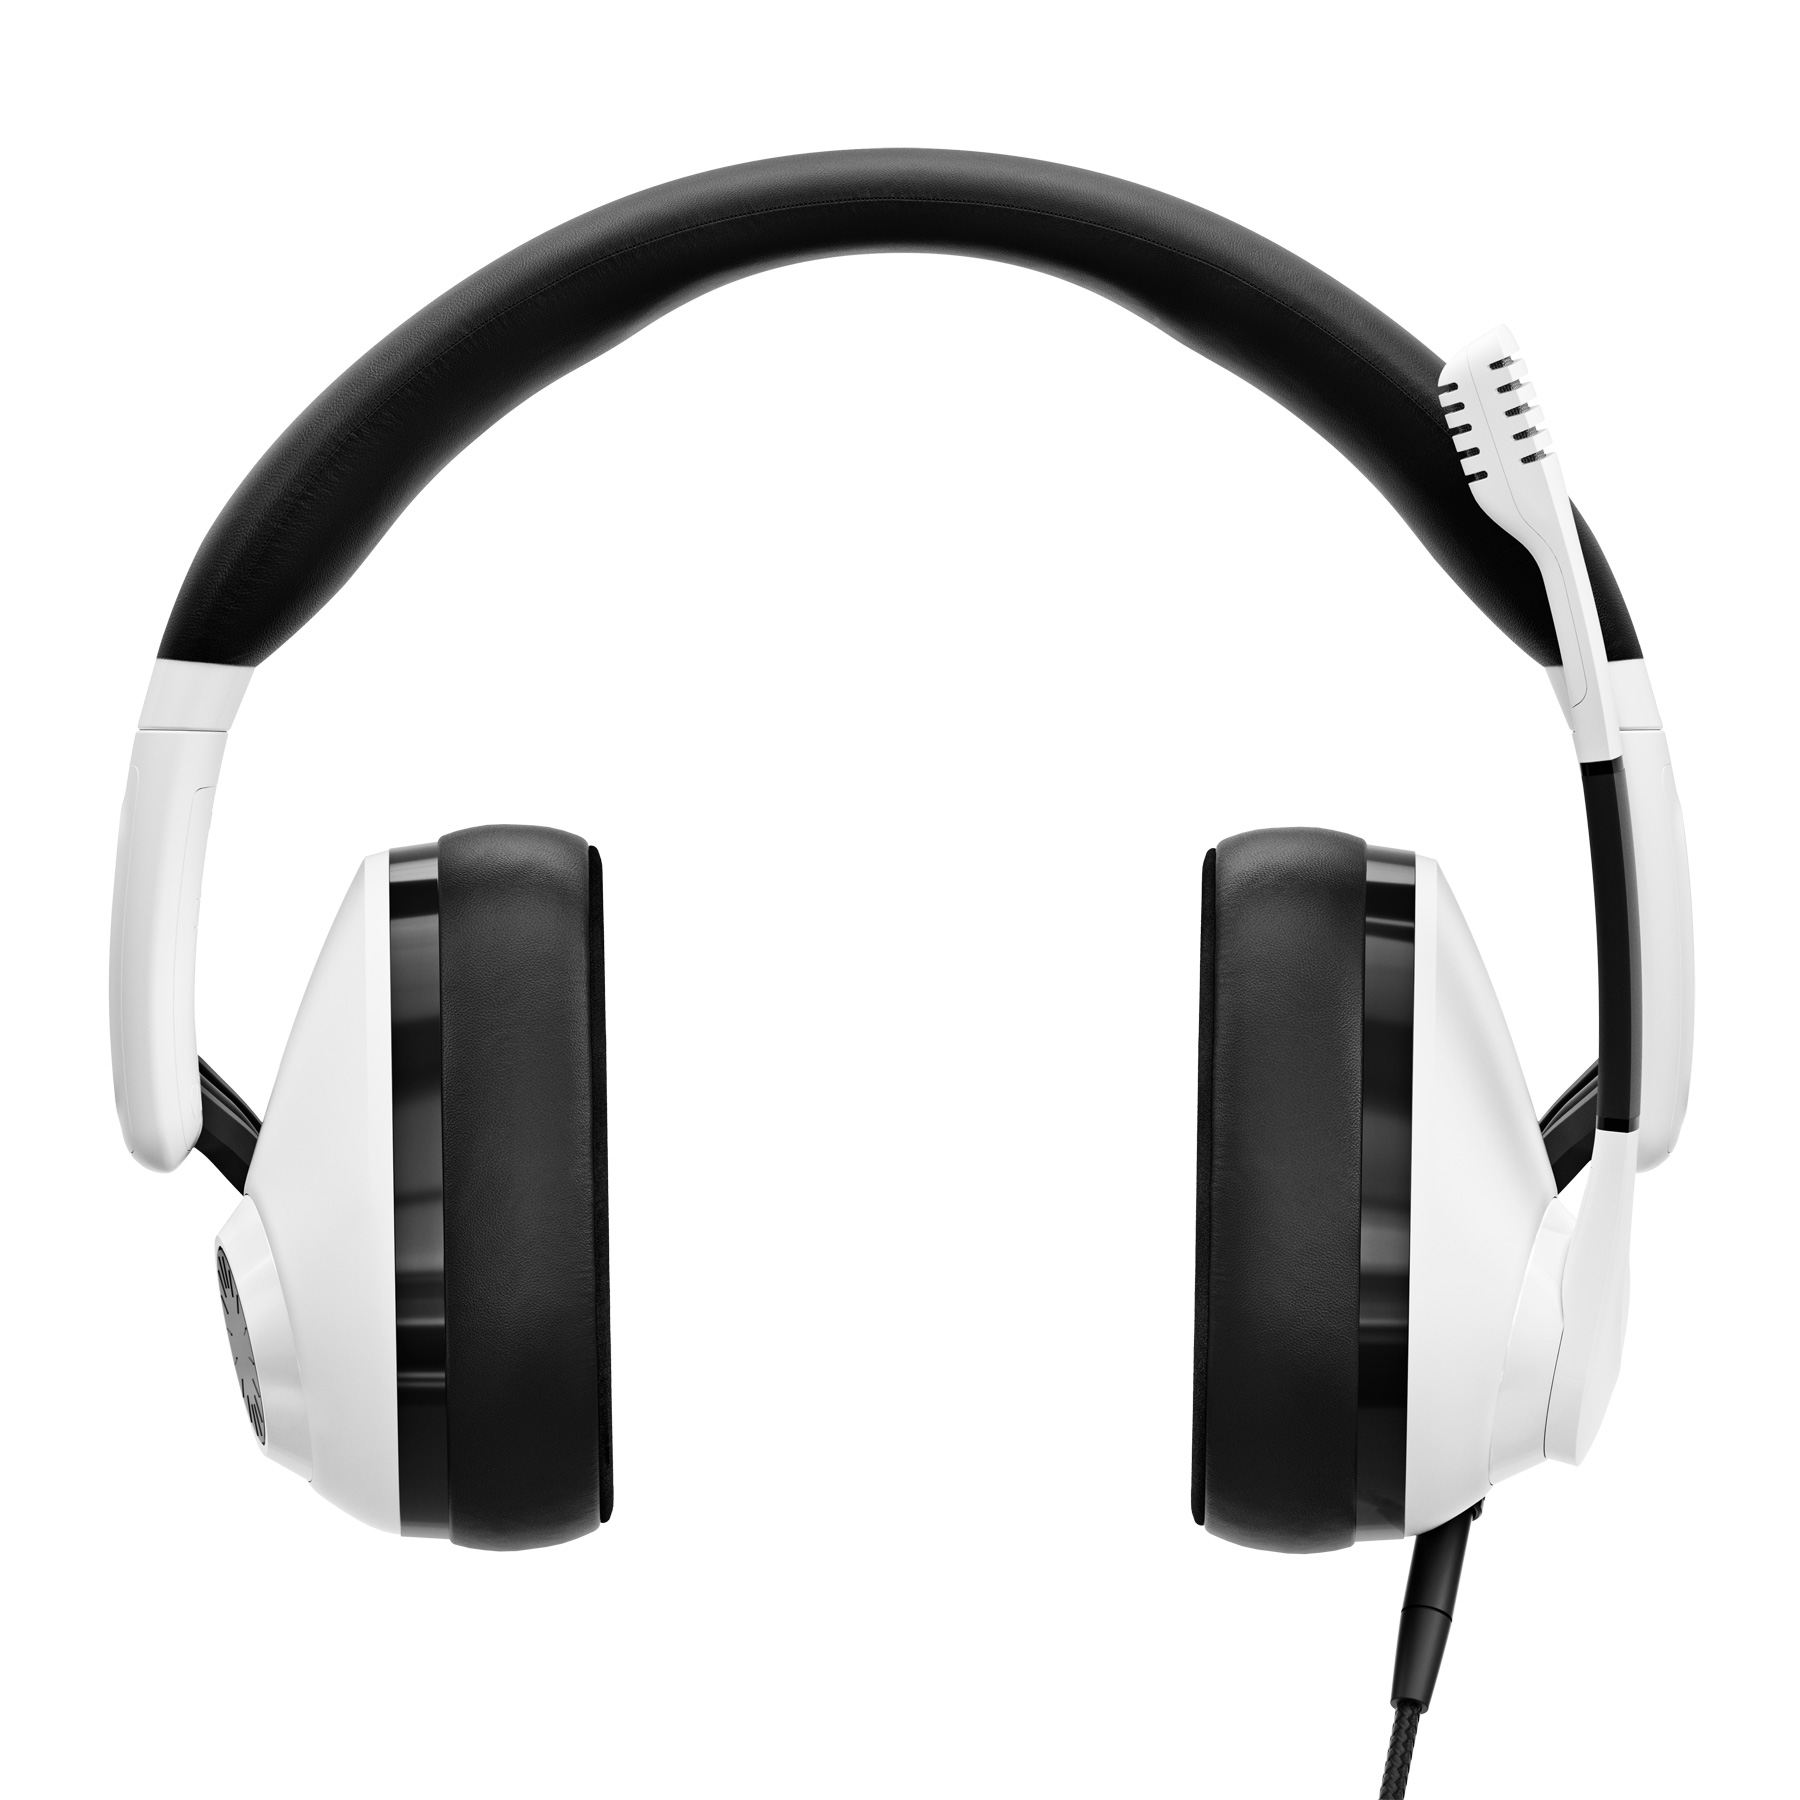 EPOS launches Switch-compatible H3 wired gaming headset